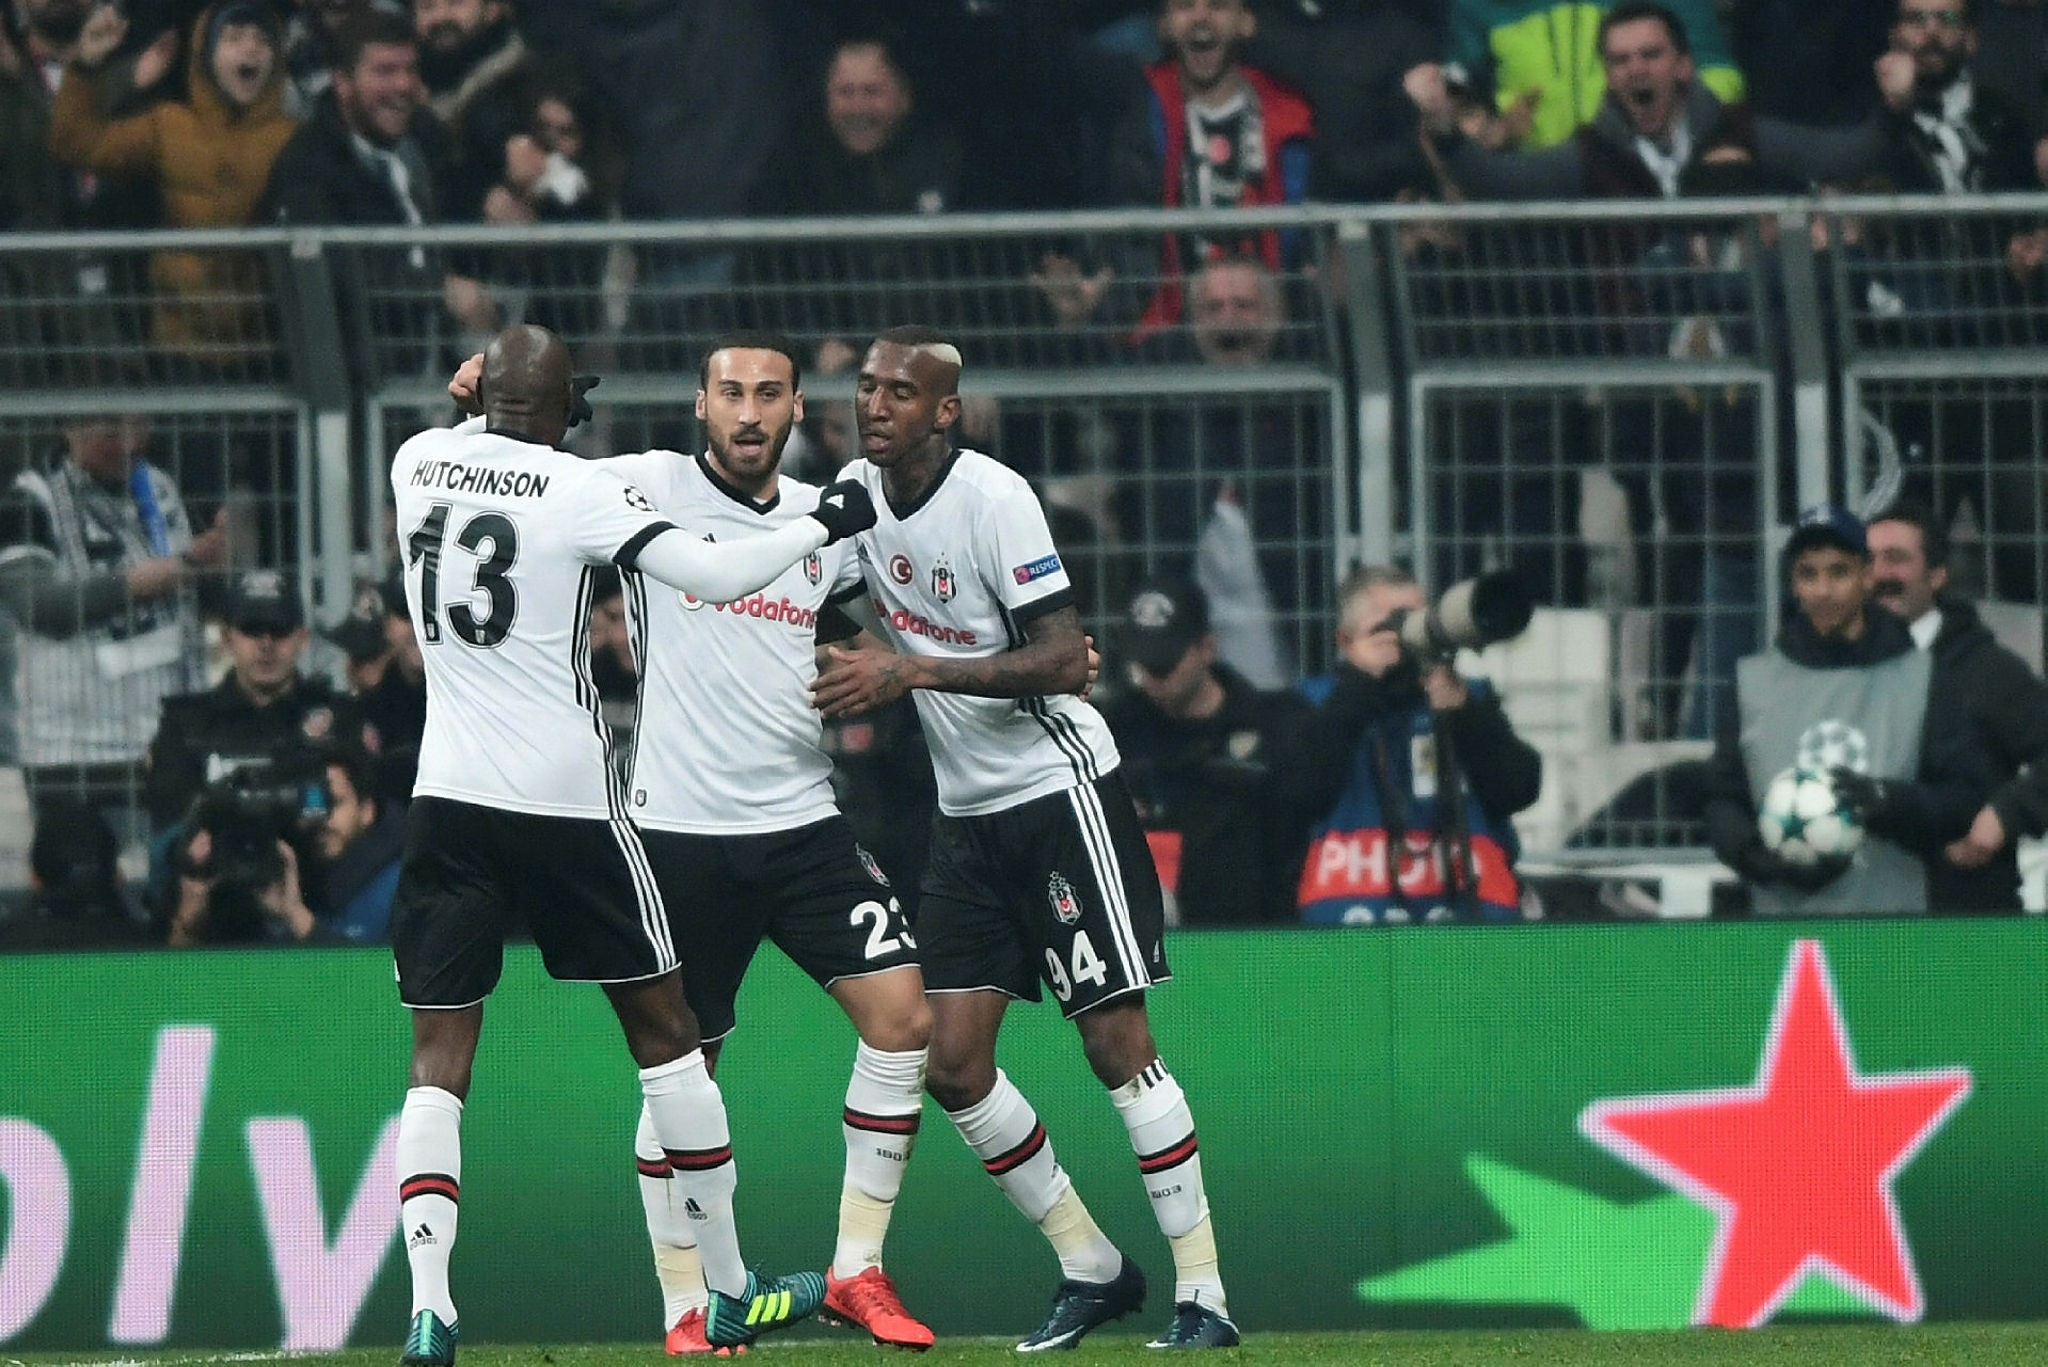 Beu015fiktau015f' midfielder Talisca (R) celebrates with teammates after scoring a goal during the UEFA Champions League Group G football match between Besiktas JK and FC Porto on November 21, 2017 at the Vodafone Park in Istanbul. (AFP Photo)